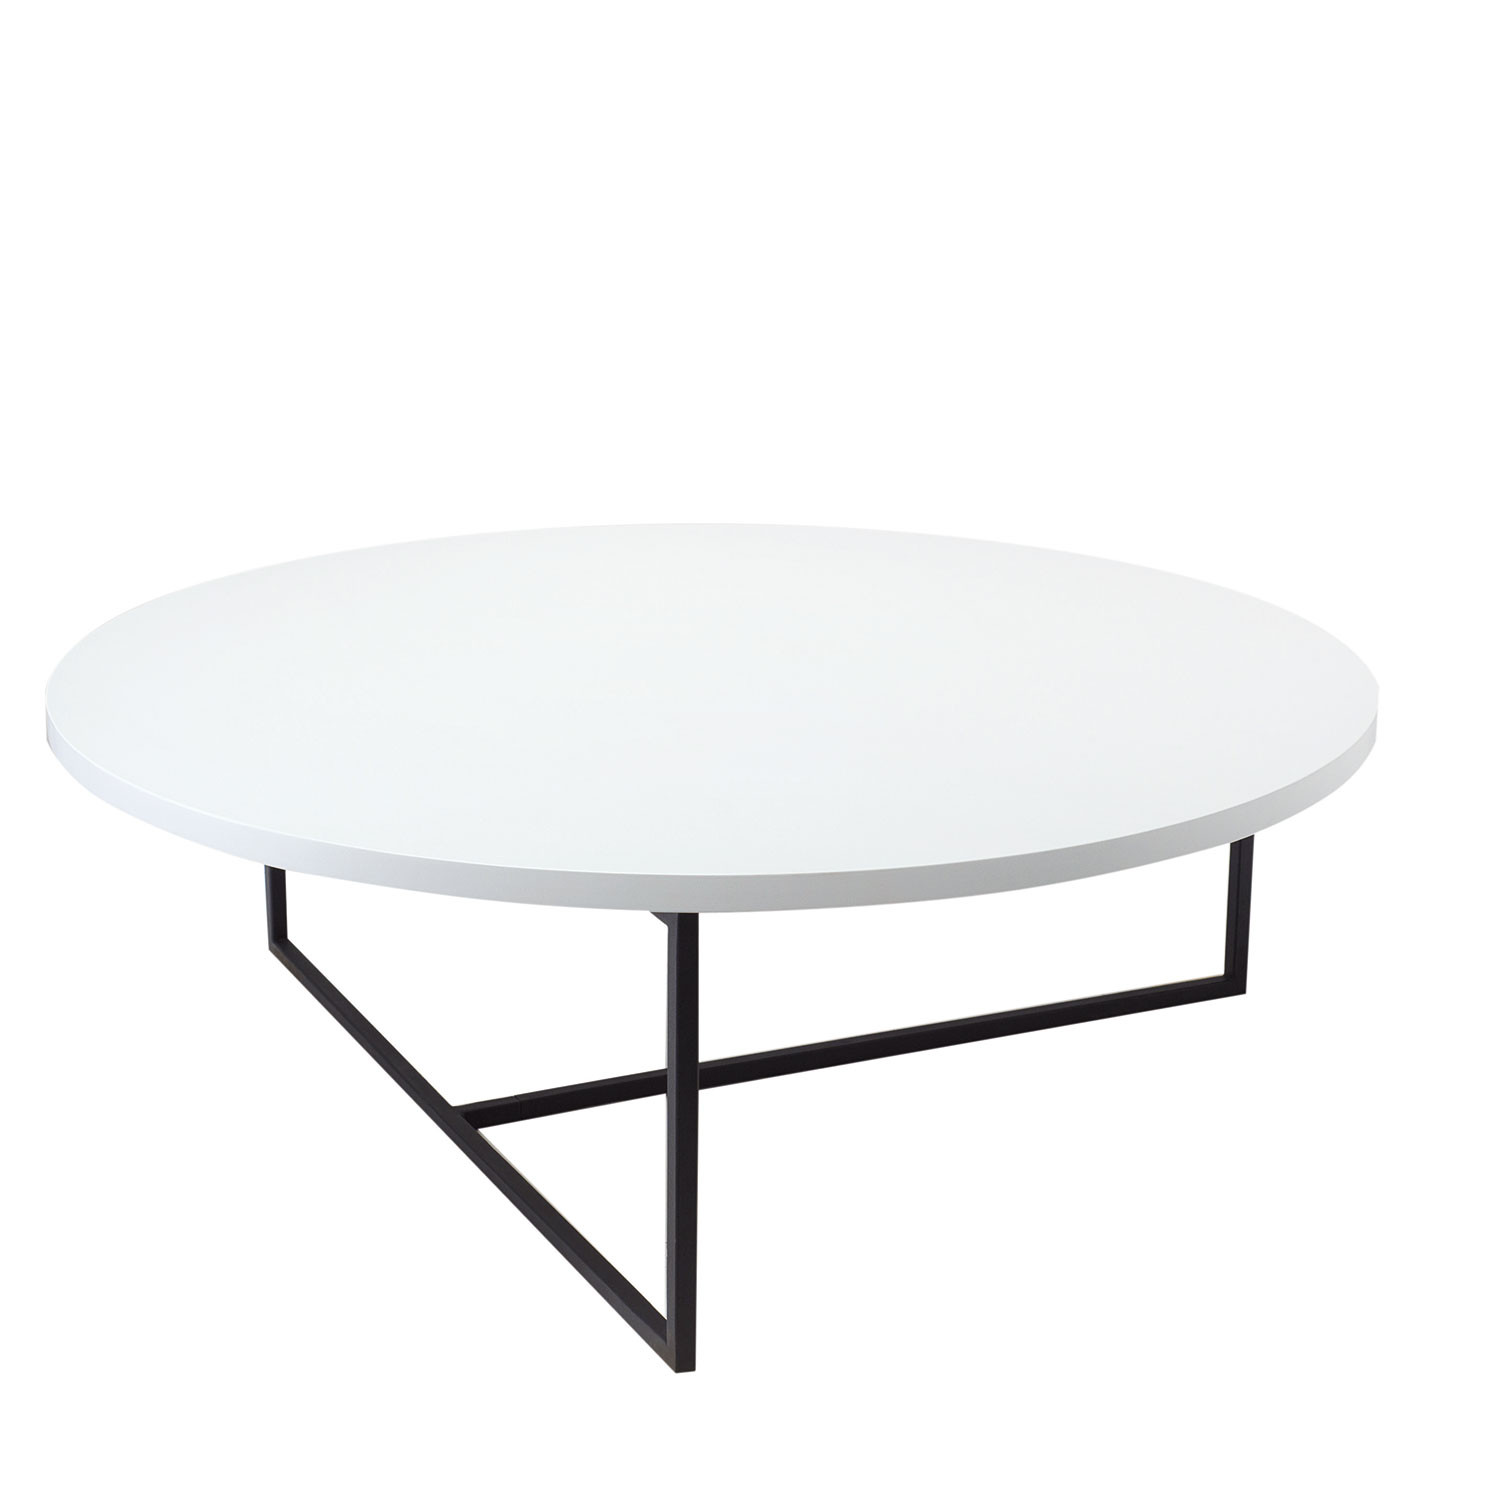 Dolf Round Coffee Table Walnut URBN Touch of Modern